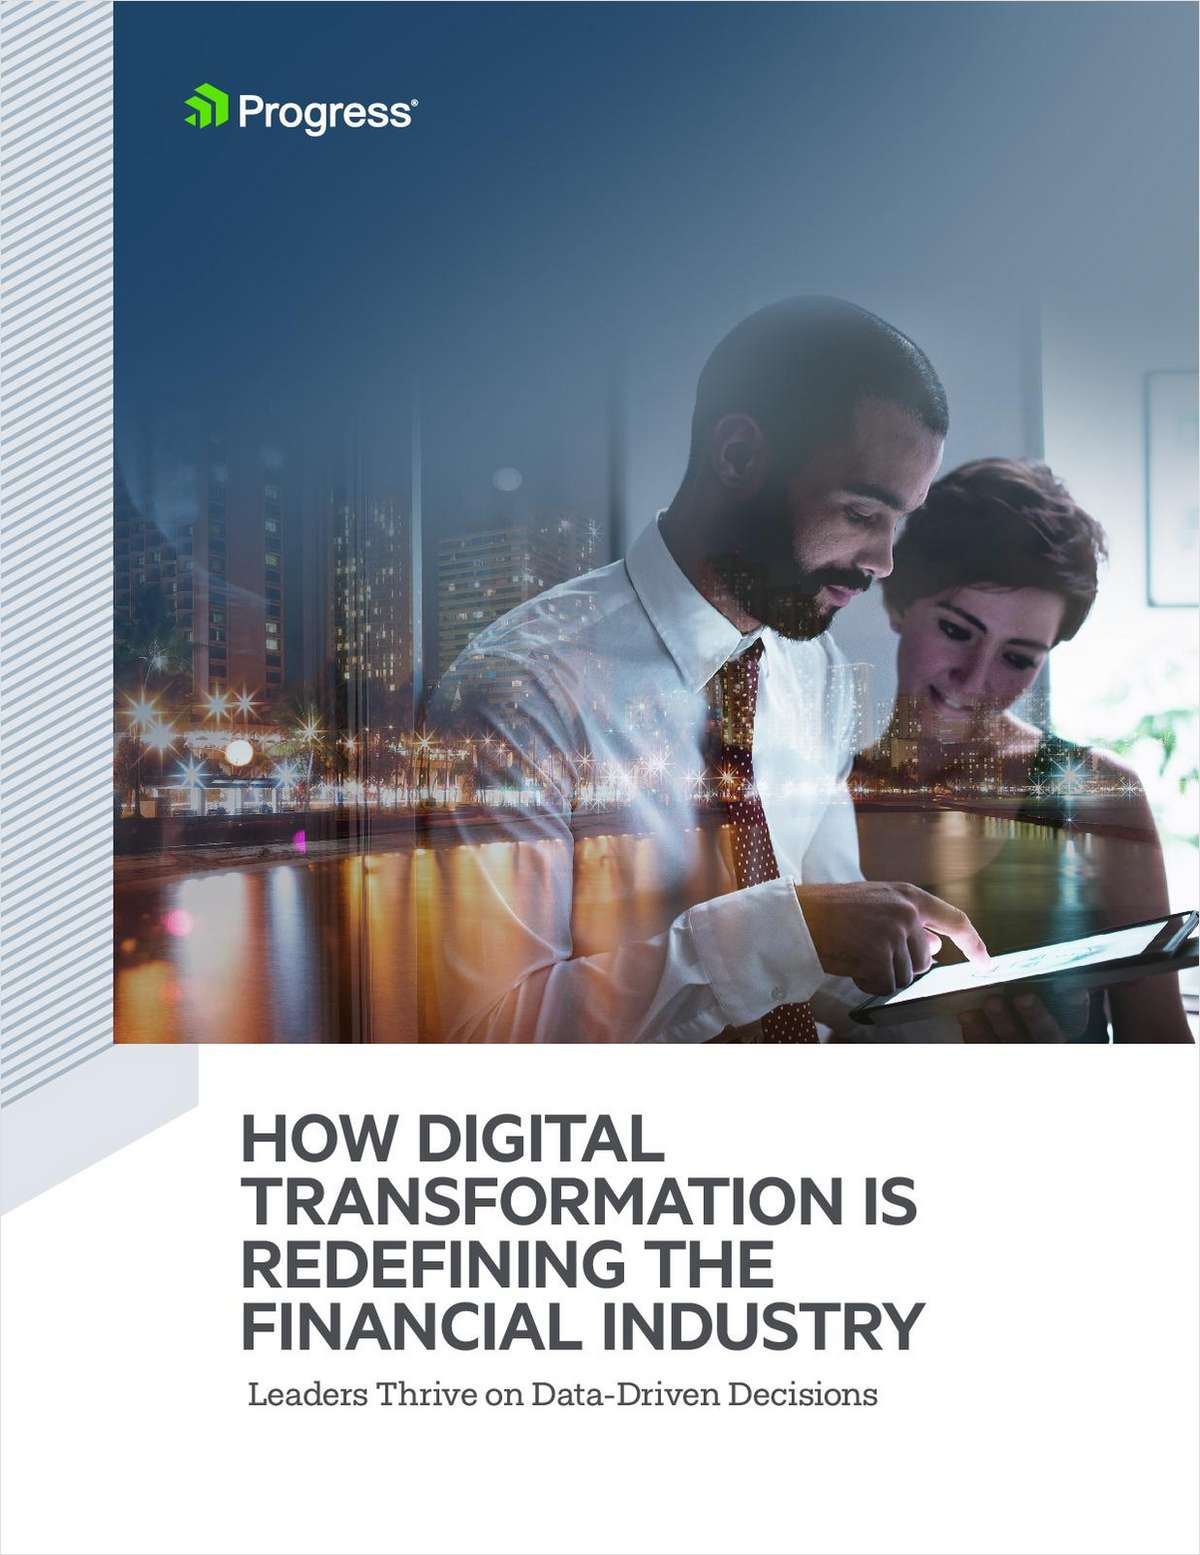 Digital Transformation in Financial Industry